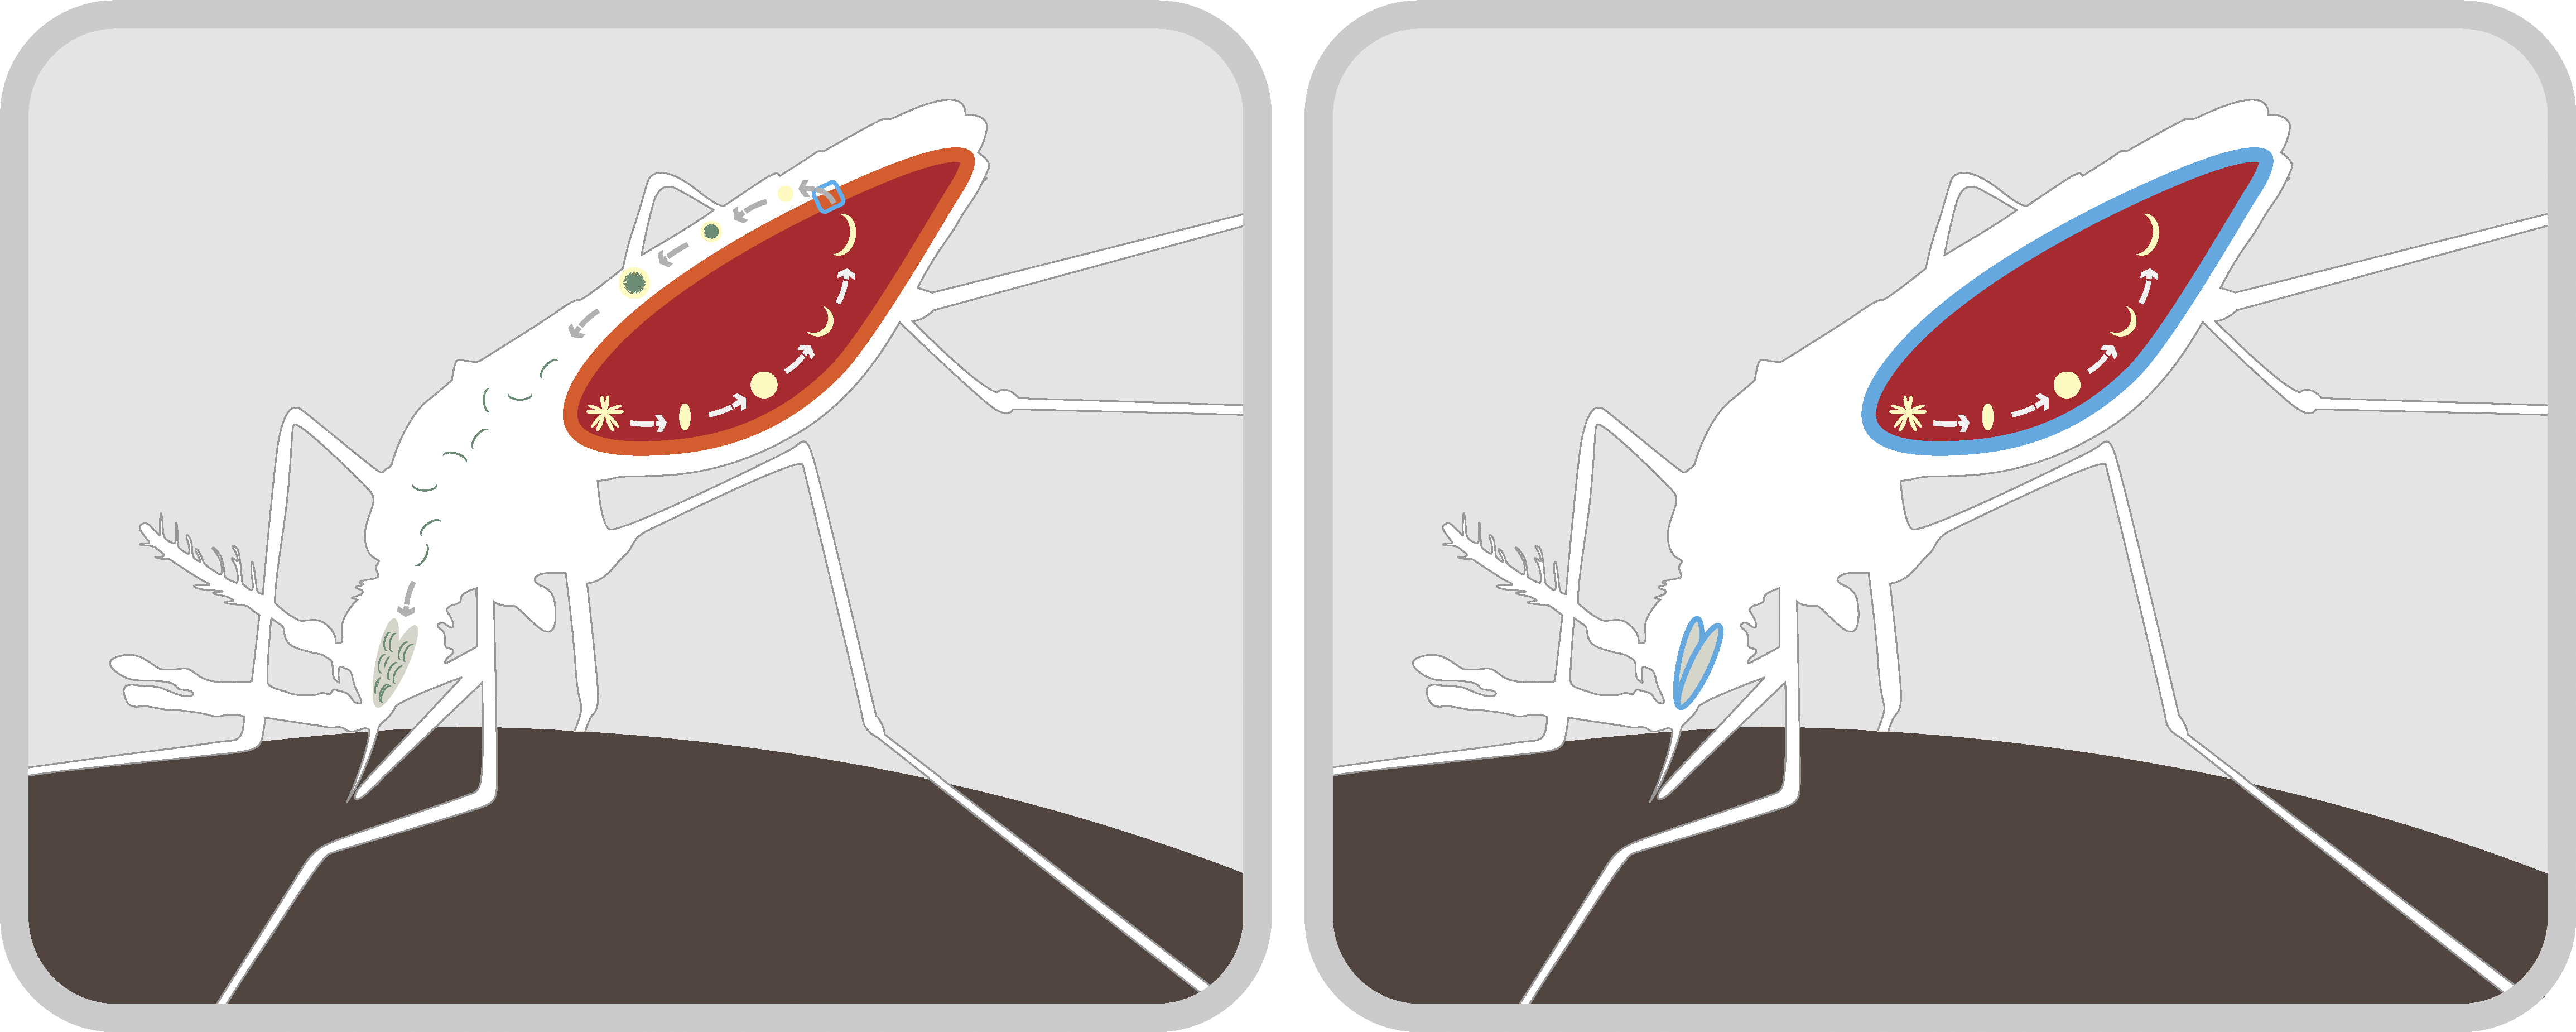 Mechanism for Blocking Malaria Transmission in the Mosquito